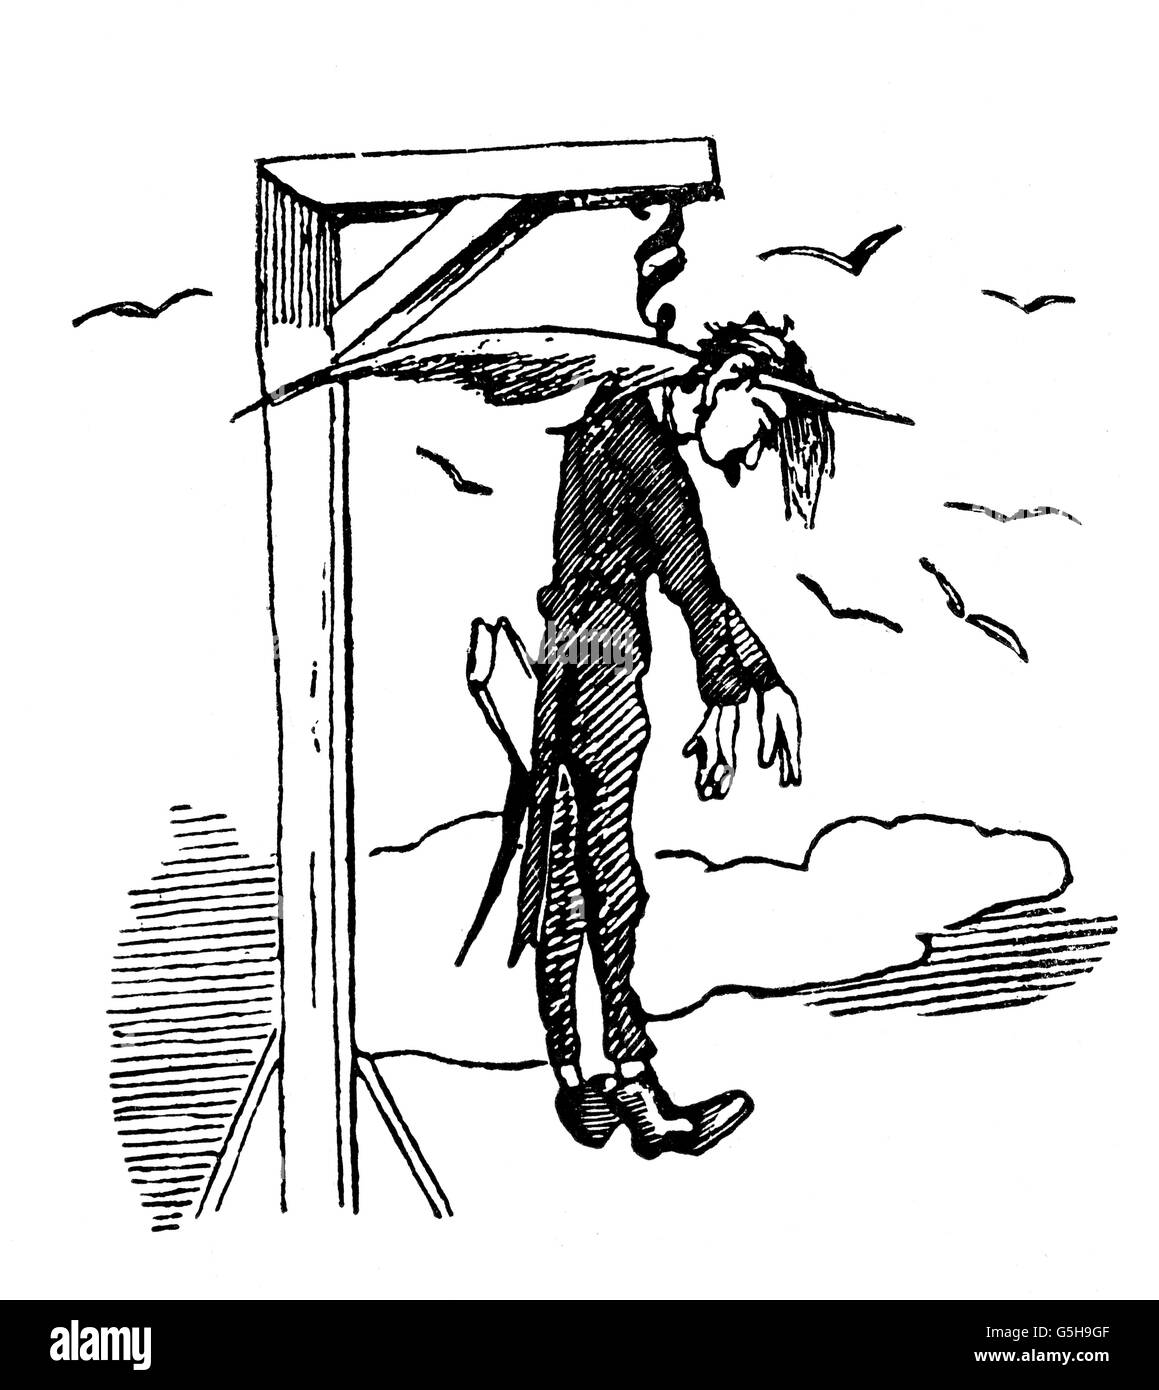 office, caricature, civil servant hanging on paragraph on the gallows, 1848, Additional-Rights-Clearences-NA - Stock Image